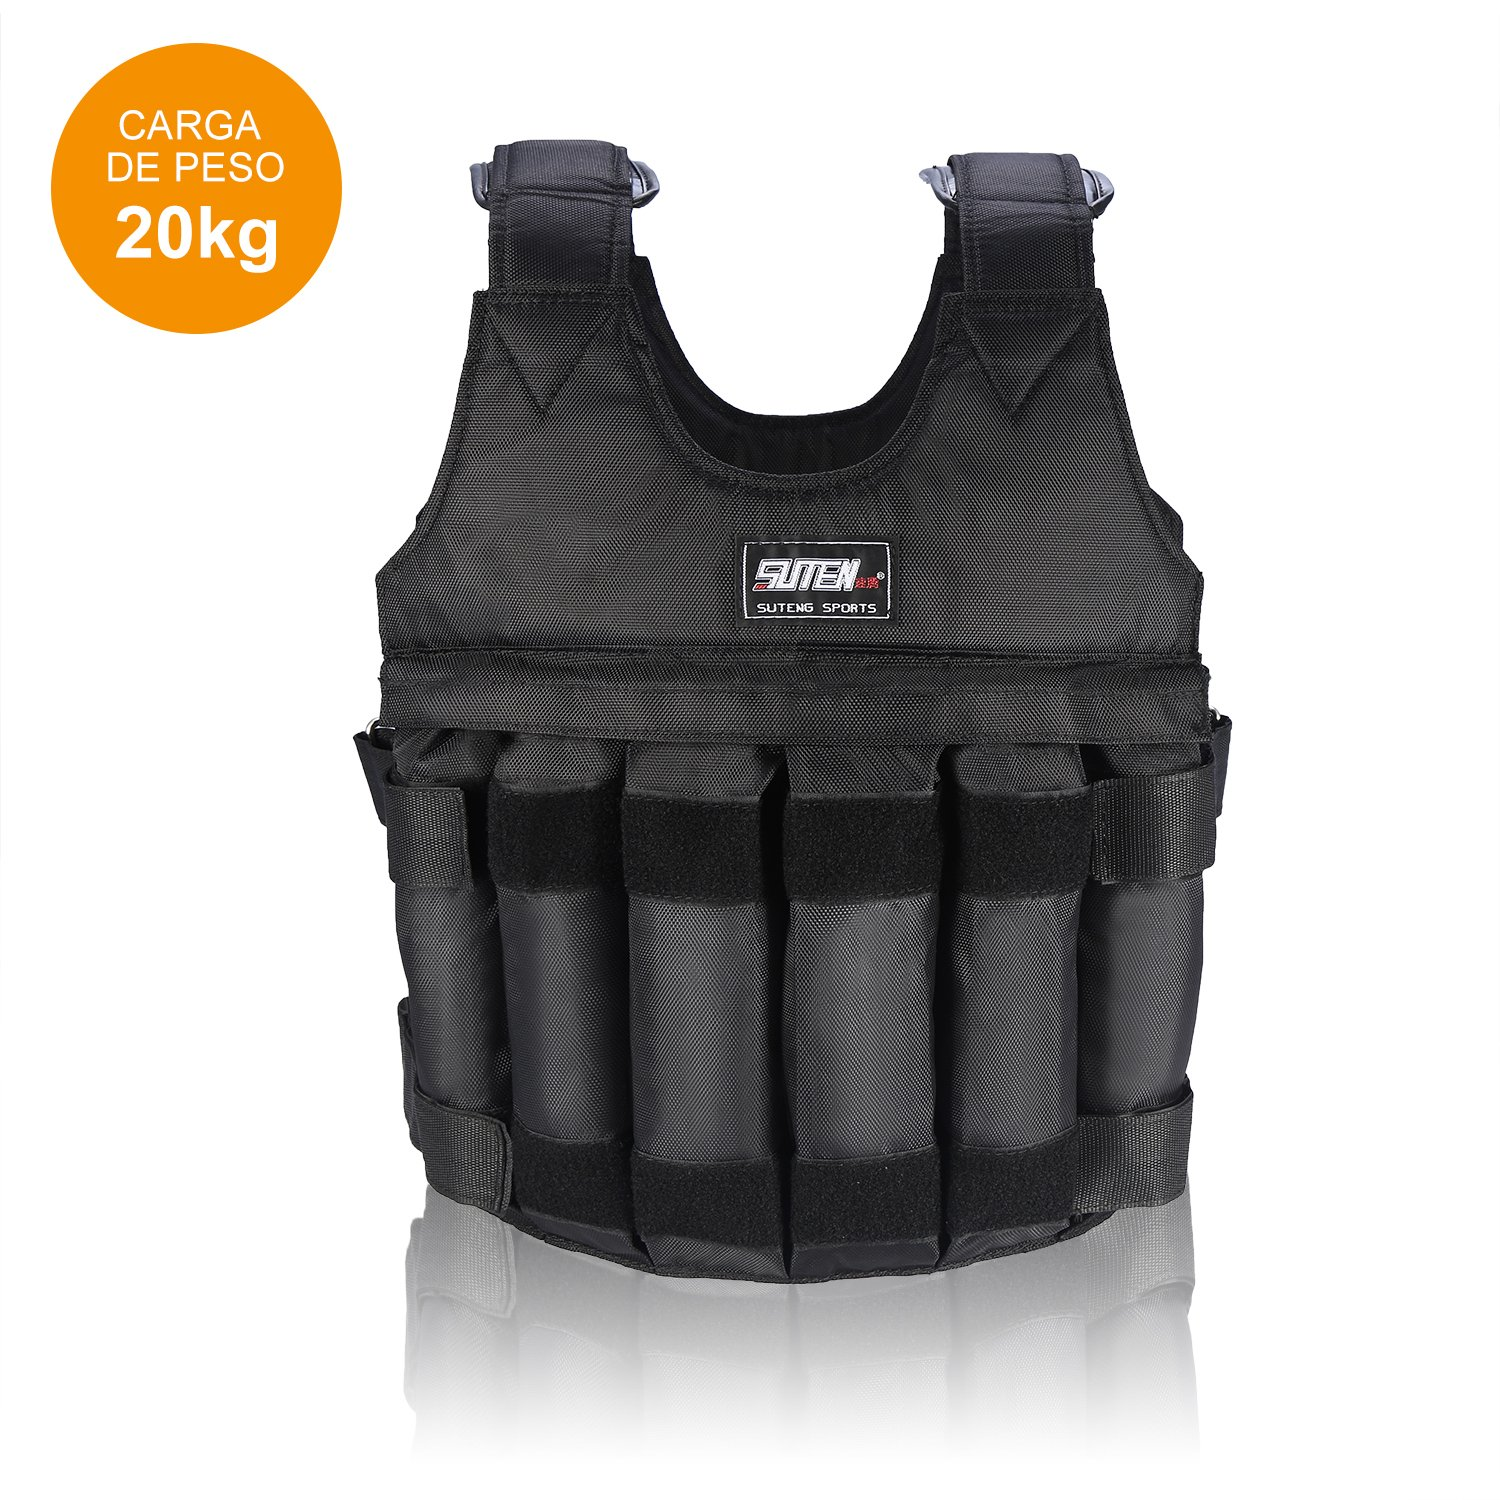 Weighted Vest, Adjustable Strength Training Vest Weightloading Sand Clothing (Weights Not Included)(Color : 40 lbs) by VGEBY